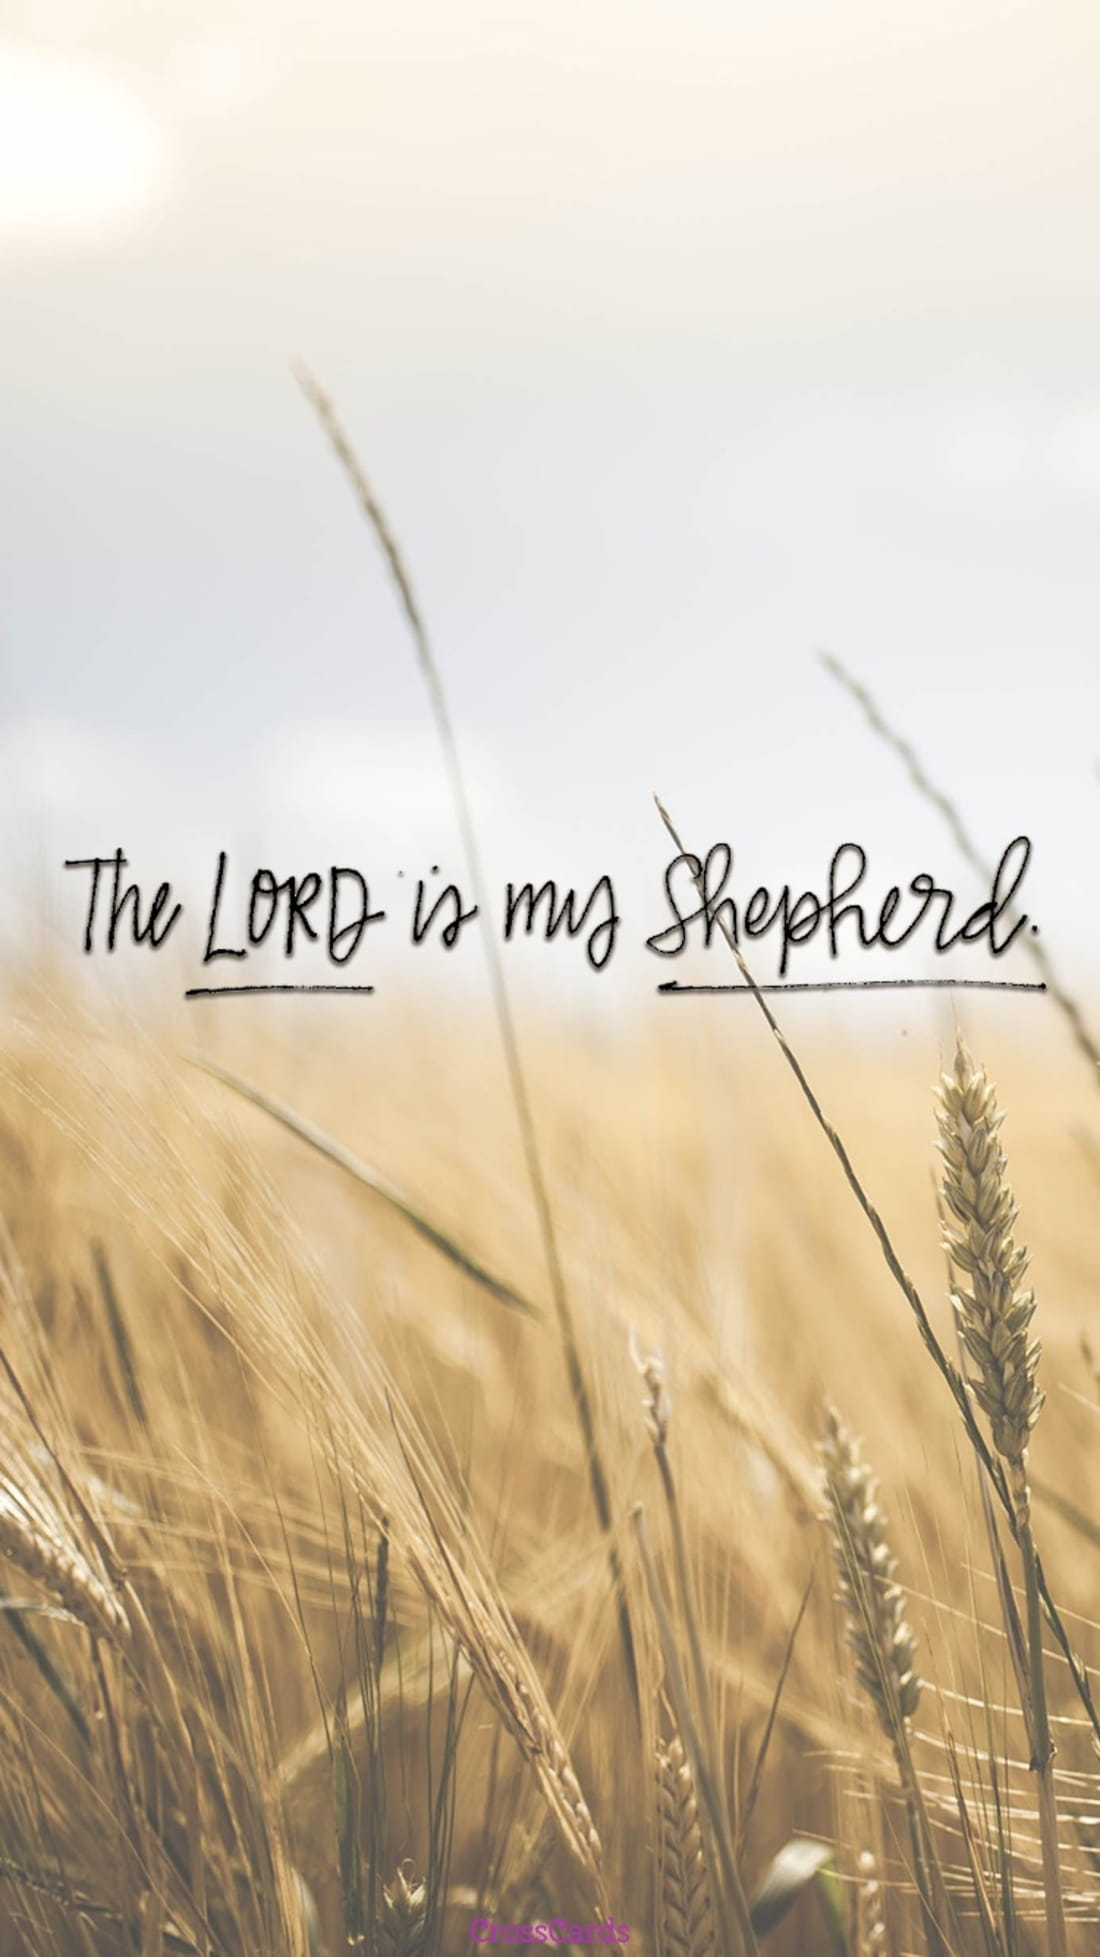 The Lord is my Shepherd mobile phone wallpaper